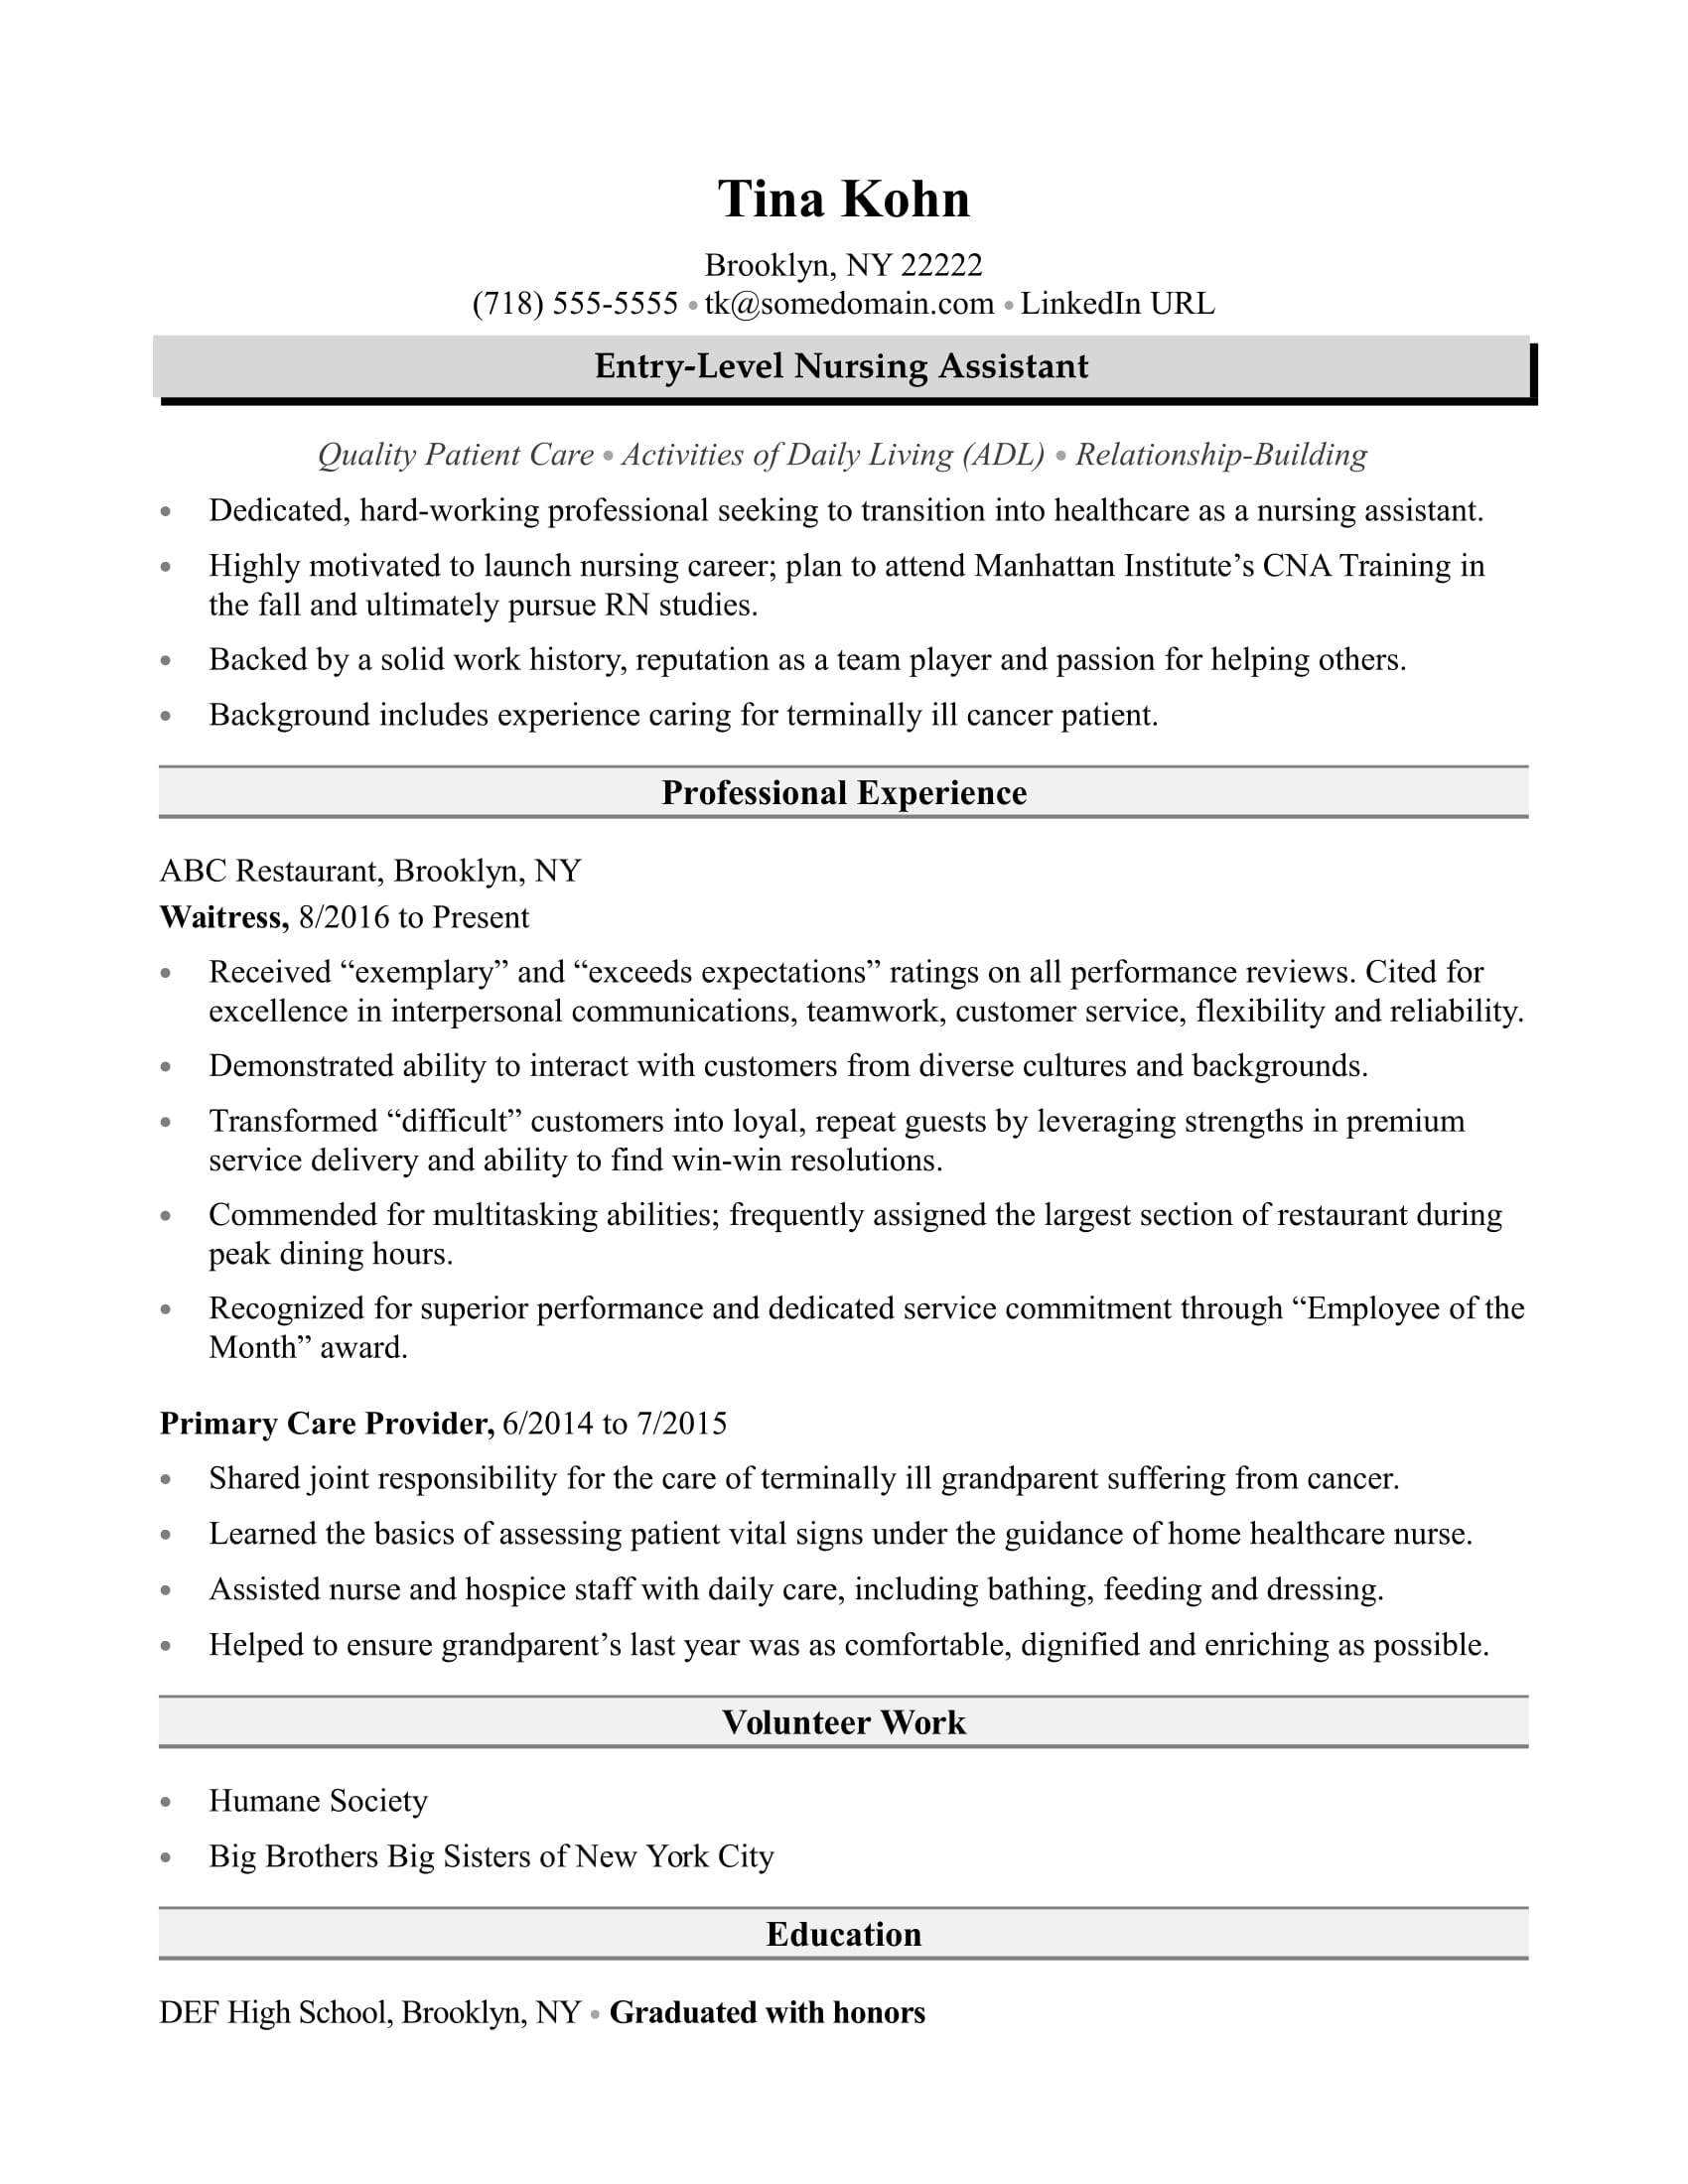 Samples Of Entry Level Resumes Nursing Assistant Resume Sample Monster